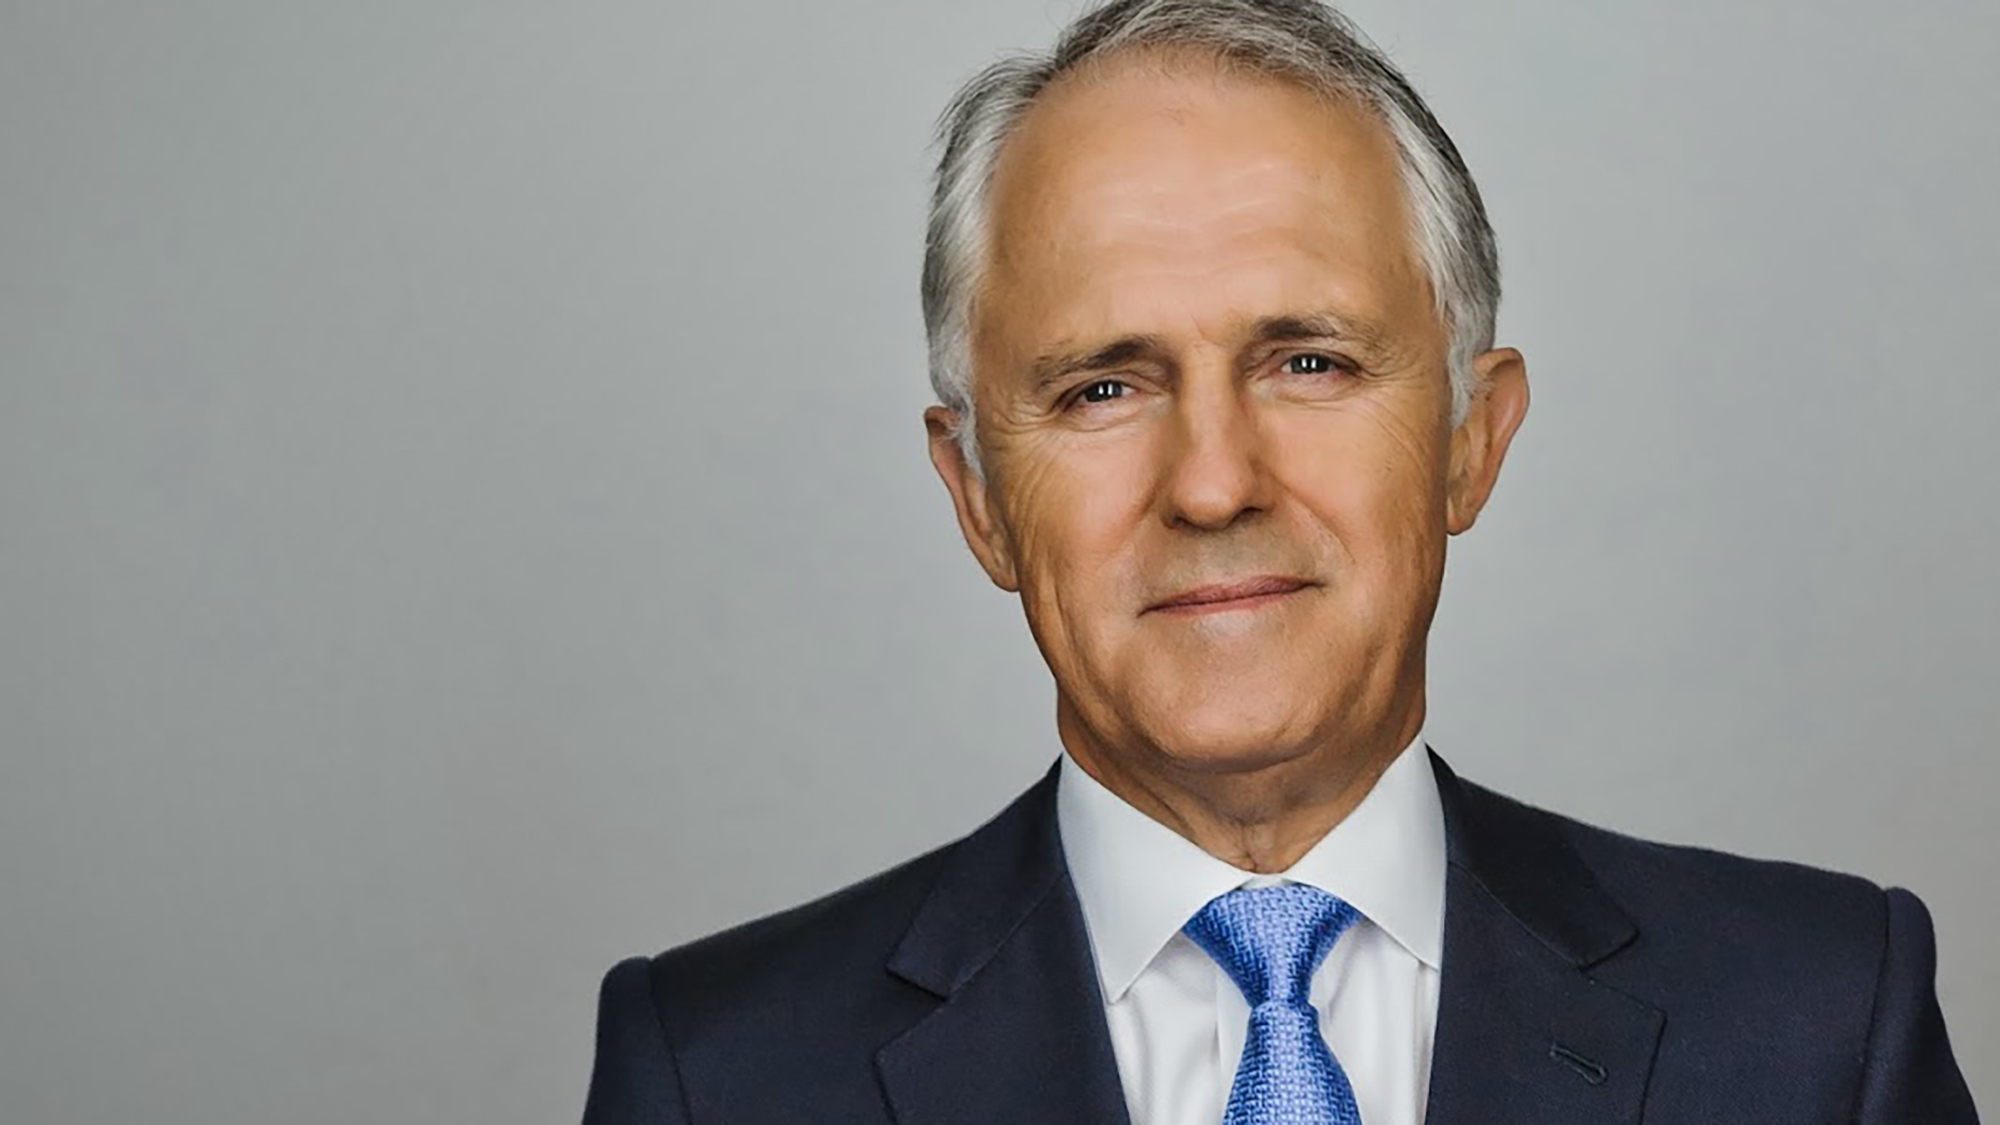 7 things you should know about our new PM, Malcolm Turnbull